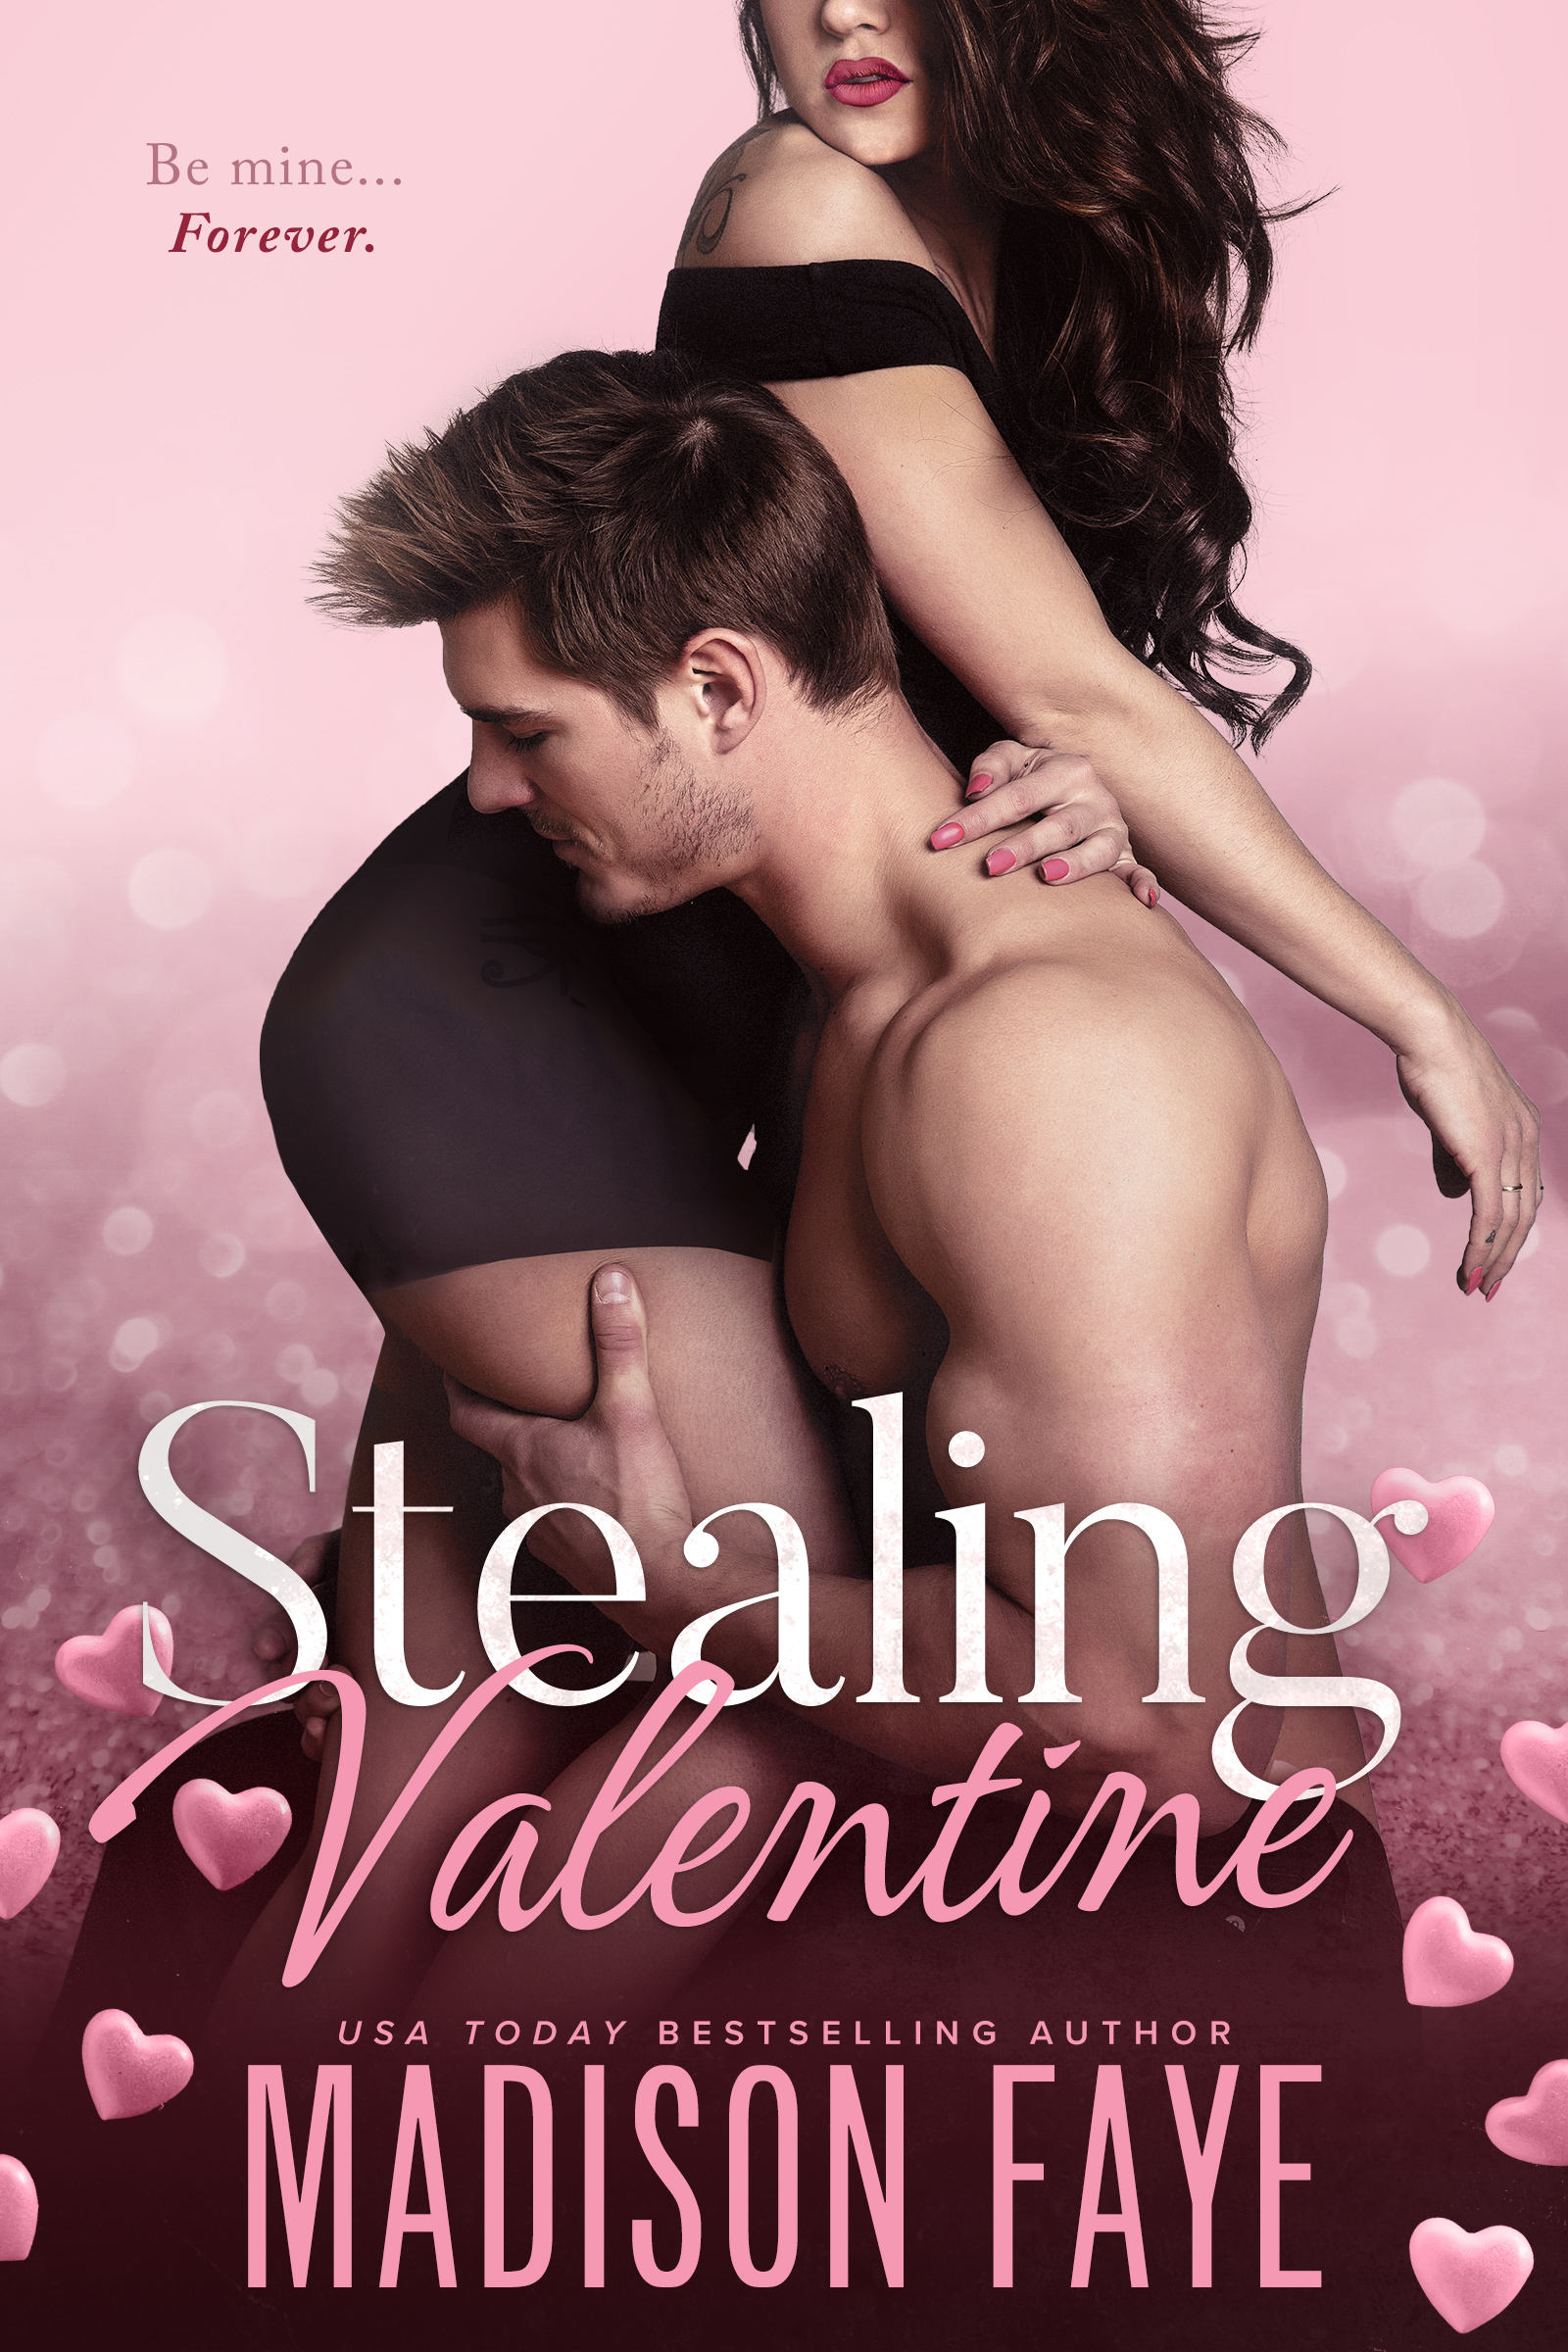 StealingValentine_Ebook.jpg